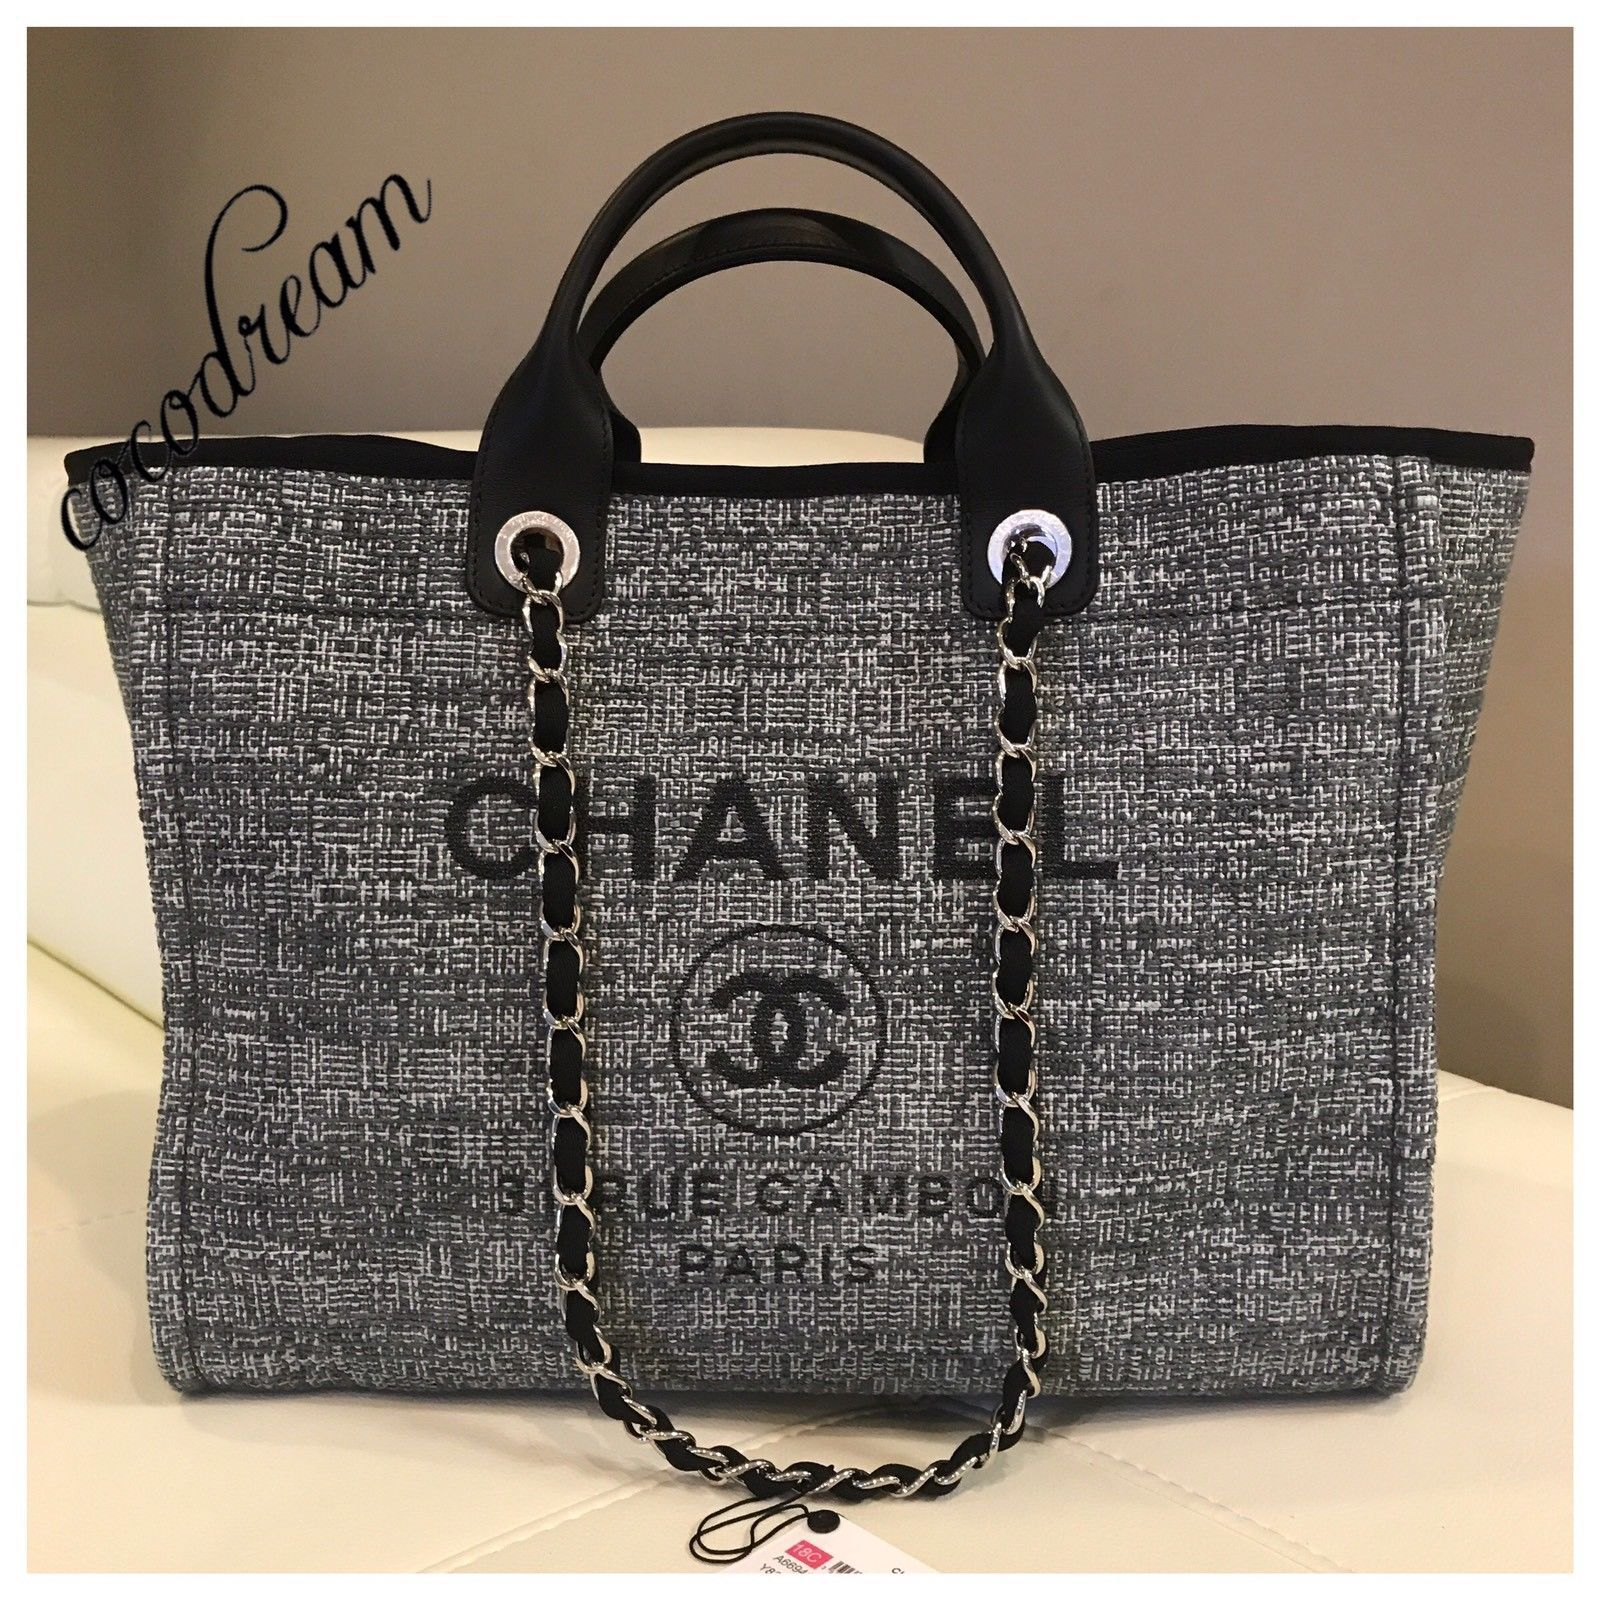 38b550b4e49a This gorgeous bag is a classic deauville tote bag in Gary charcoal color  with black timming and black Metallic CHANEL AND CC ...